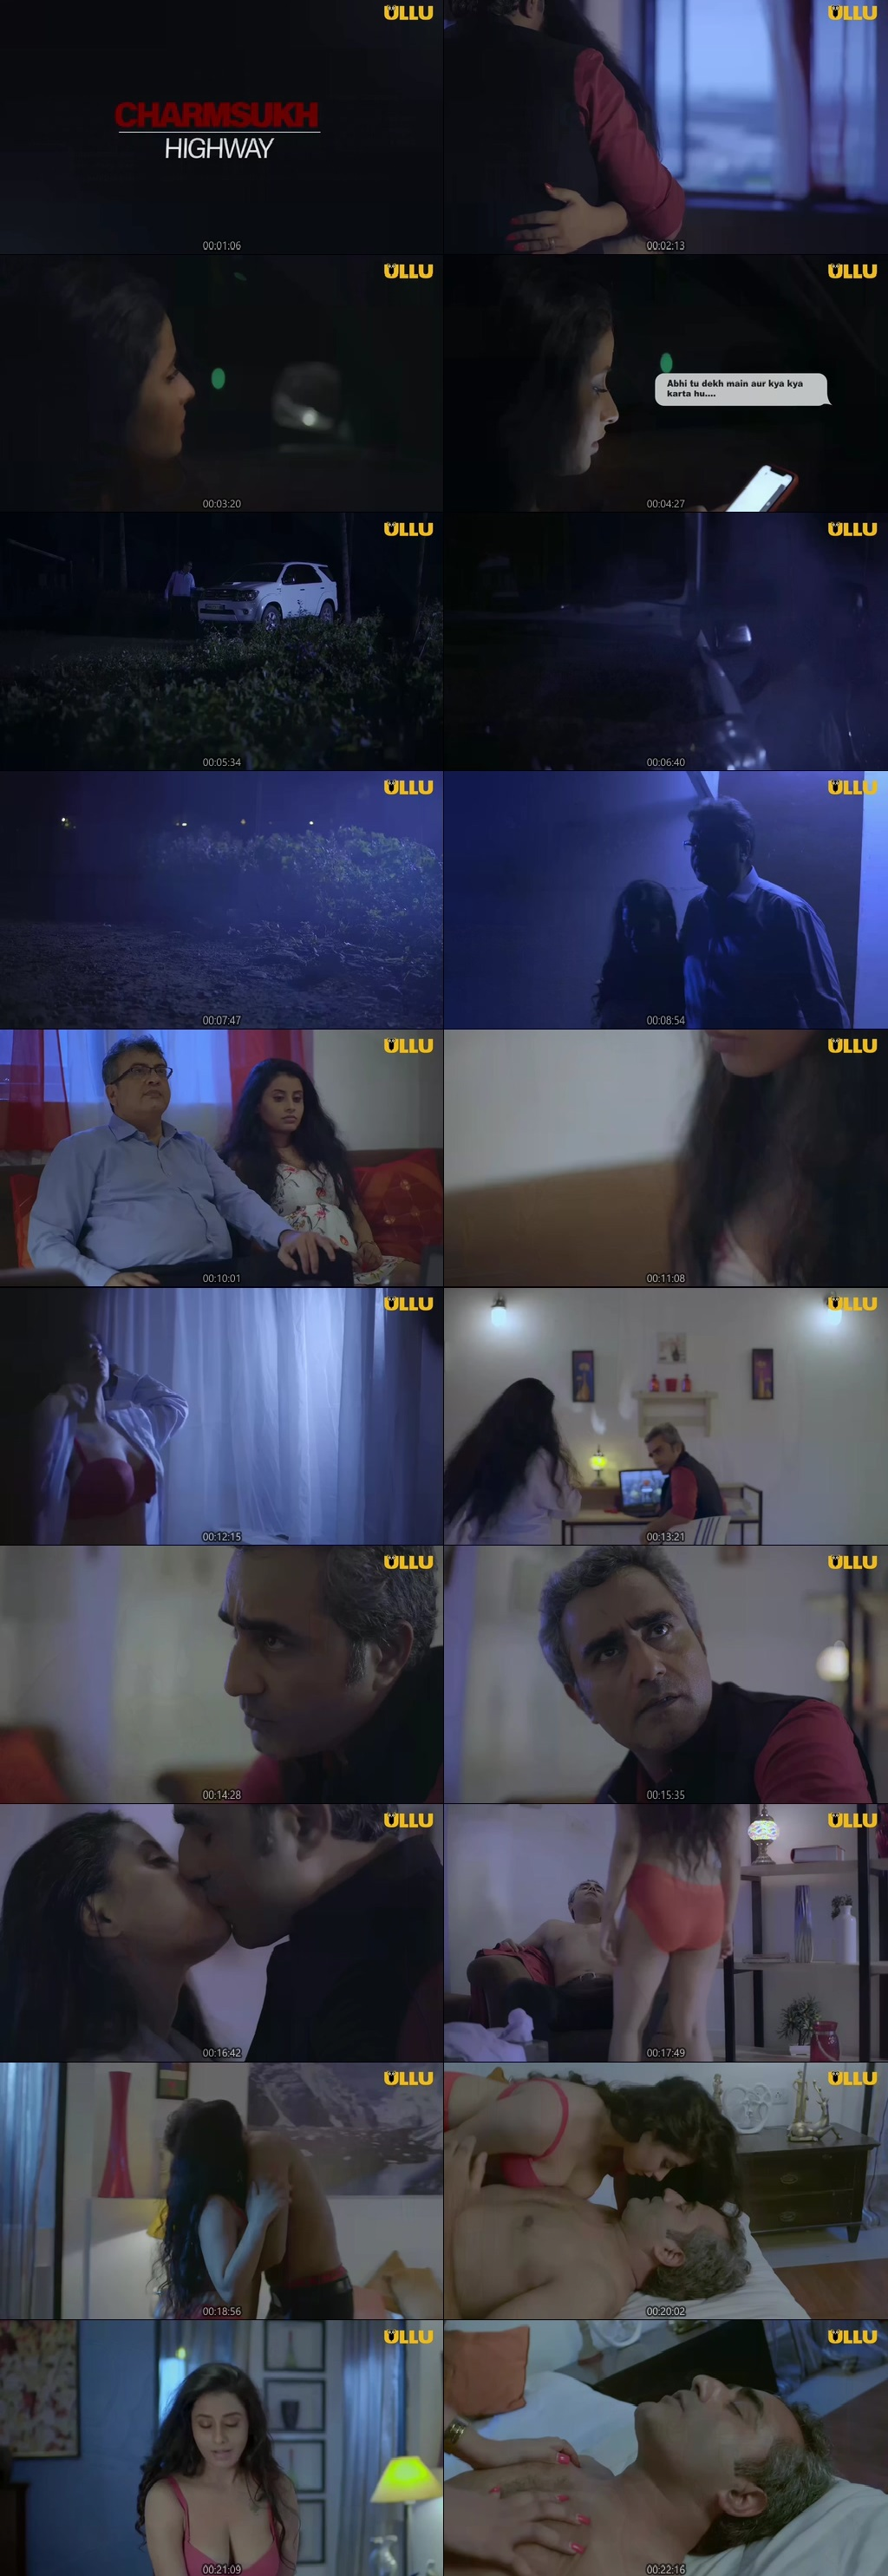 Screenshots Of Hindi Show Charmsukh - Highway Season 01 2019 Complete - All Episodes 300MB 720P HD